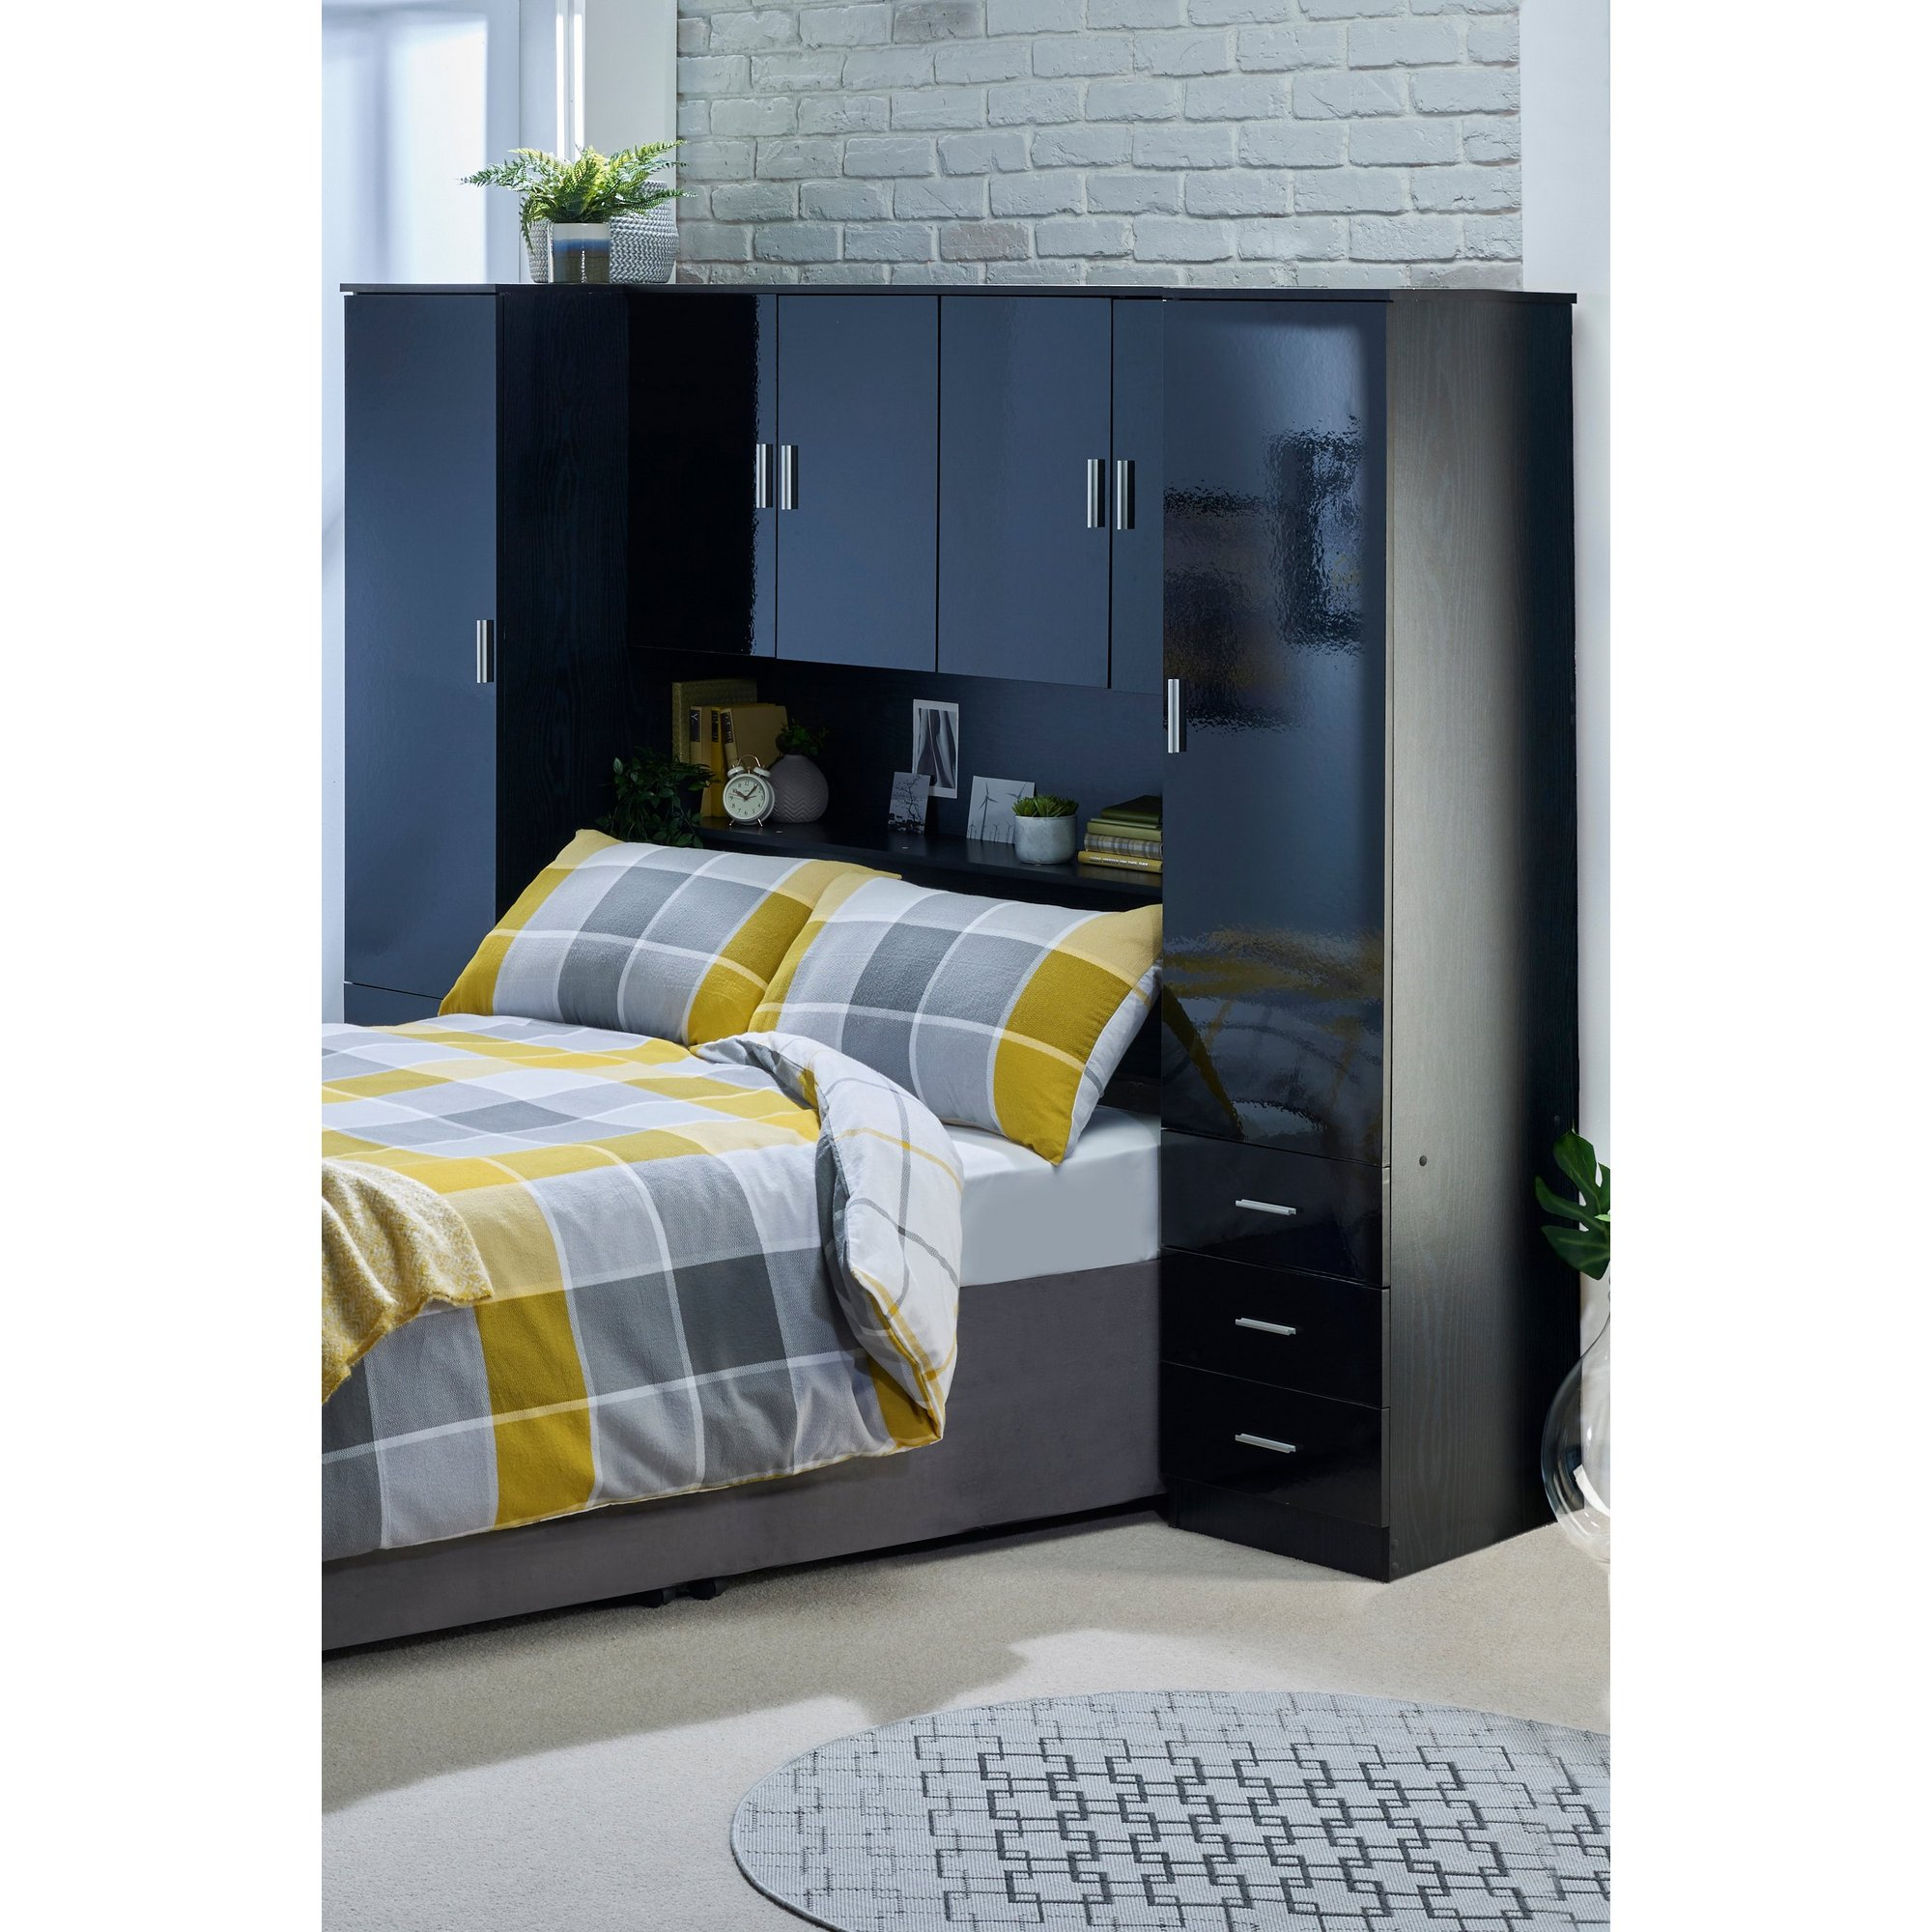 Image of Carleton Overbed Unit